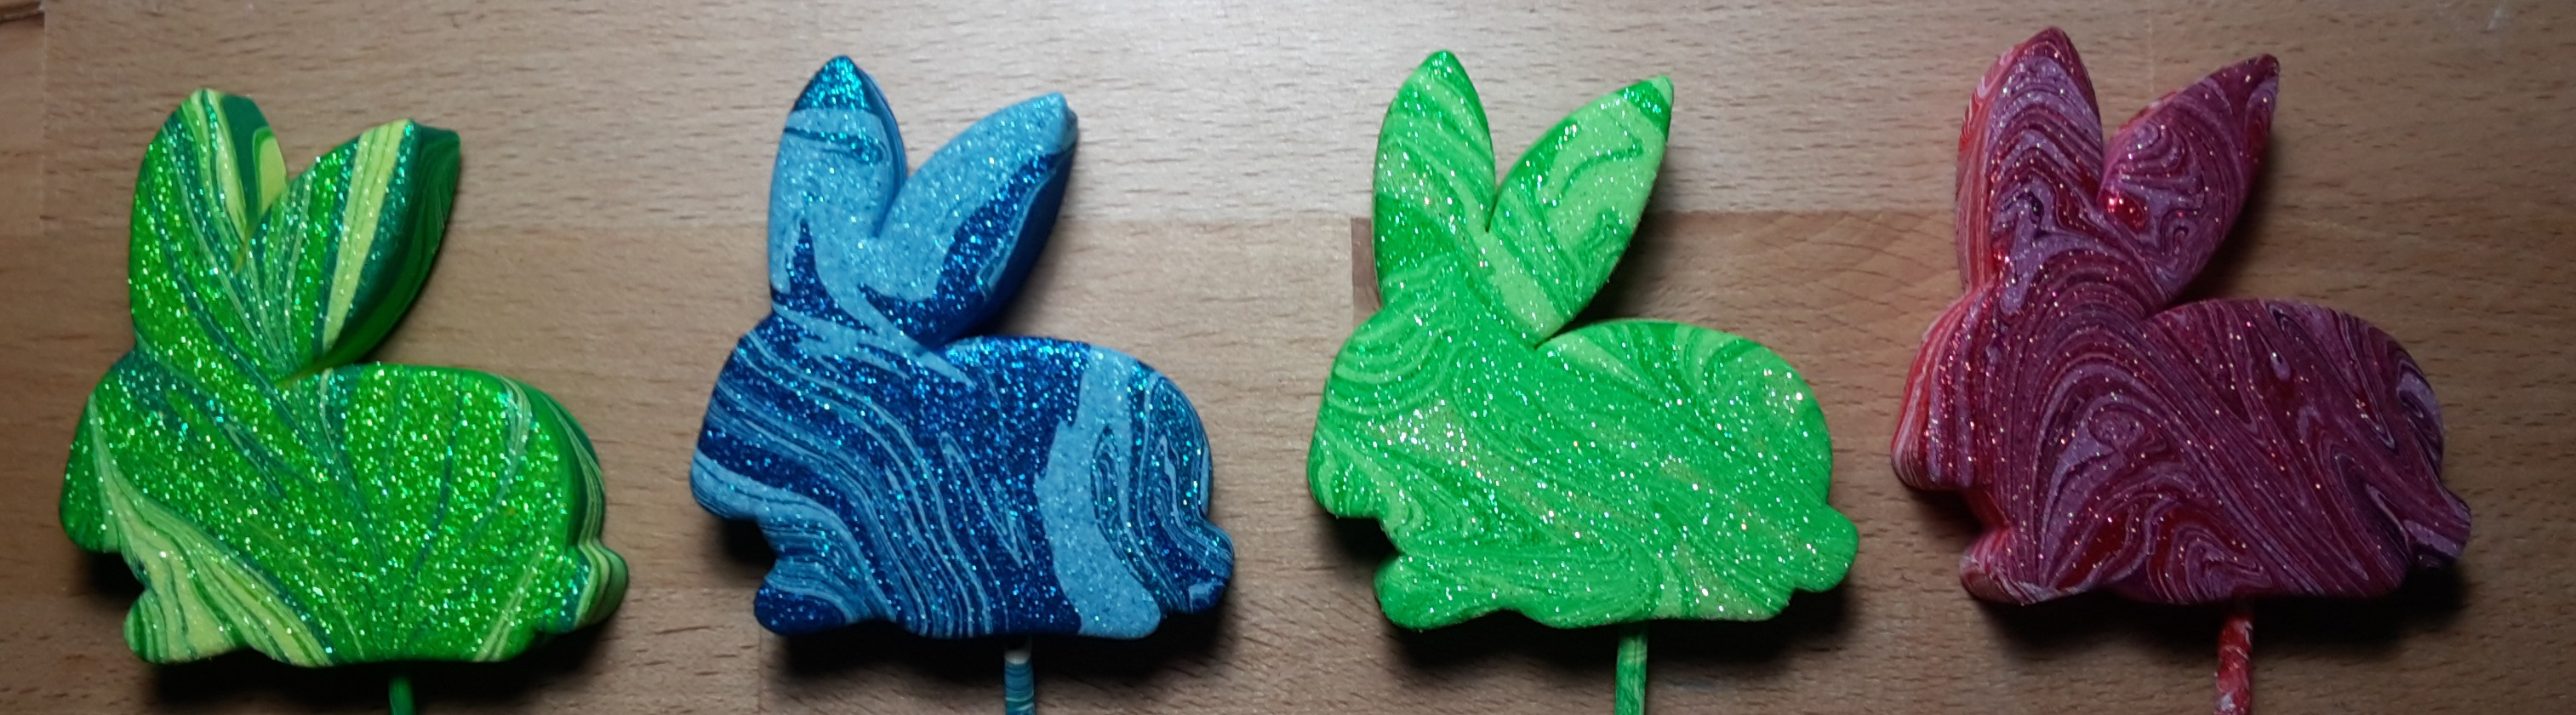 Review: Marabu Easy Marble on Glitter bunnies!